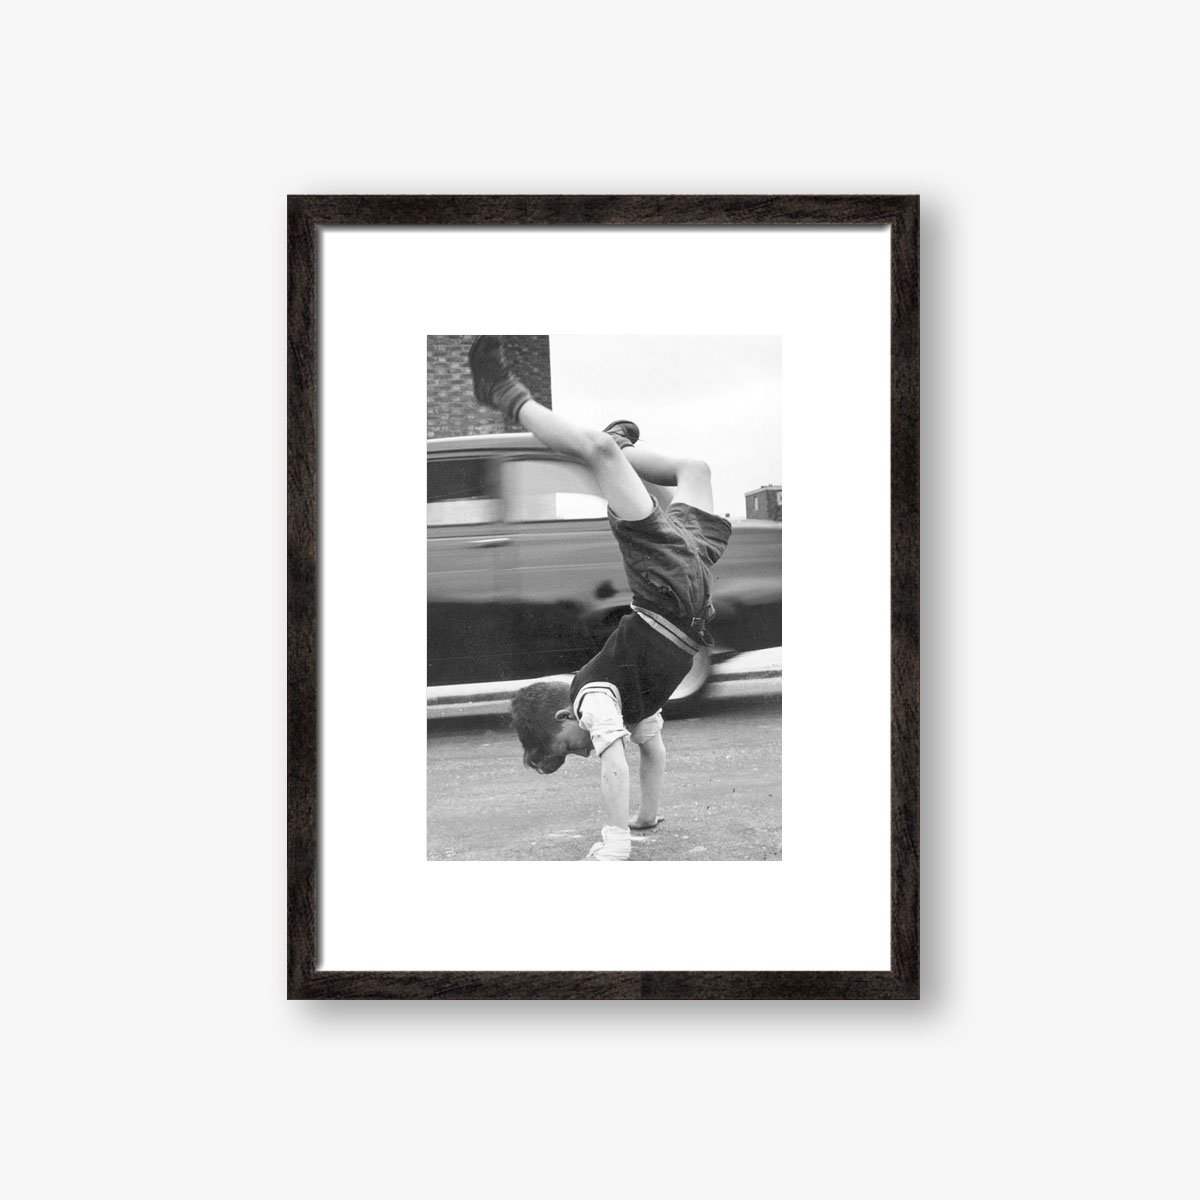 Handstand by Thurston Hopkins